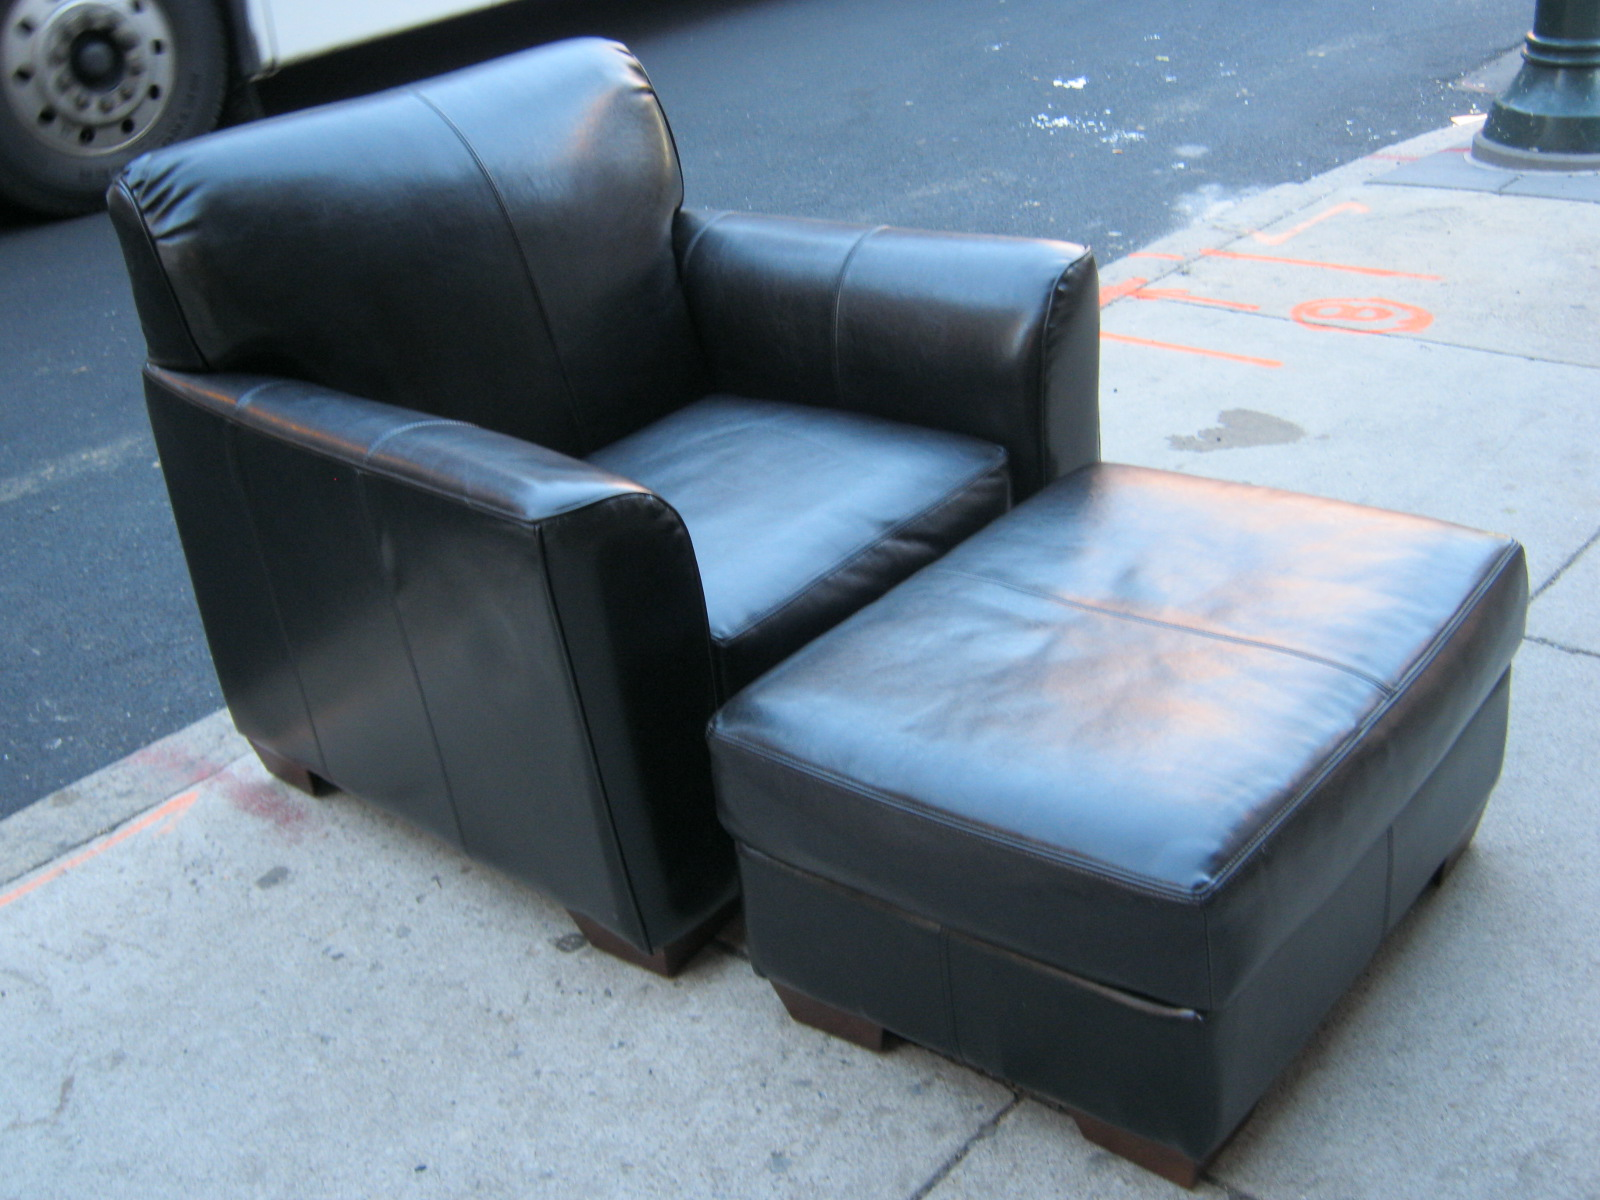 uhuru furniture & collectibles: black leather chair and ottoman sold